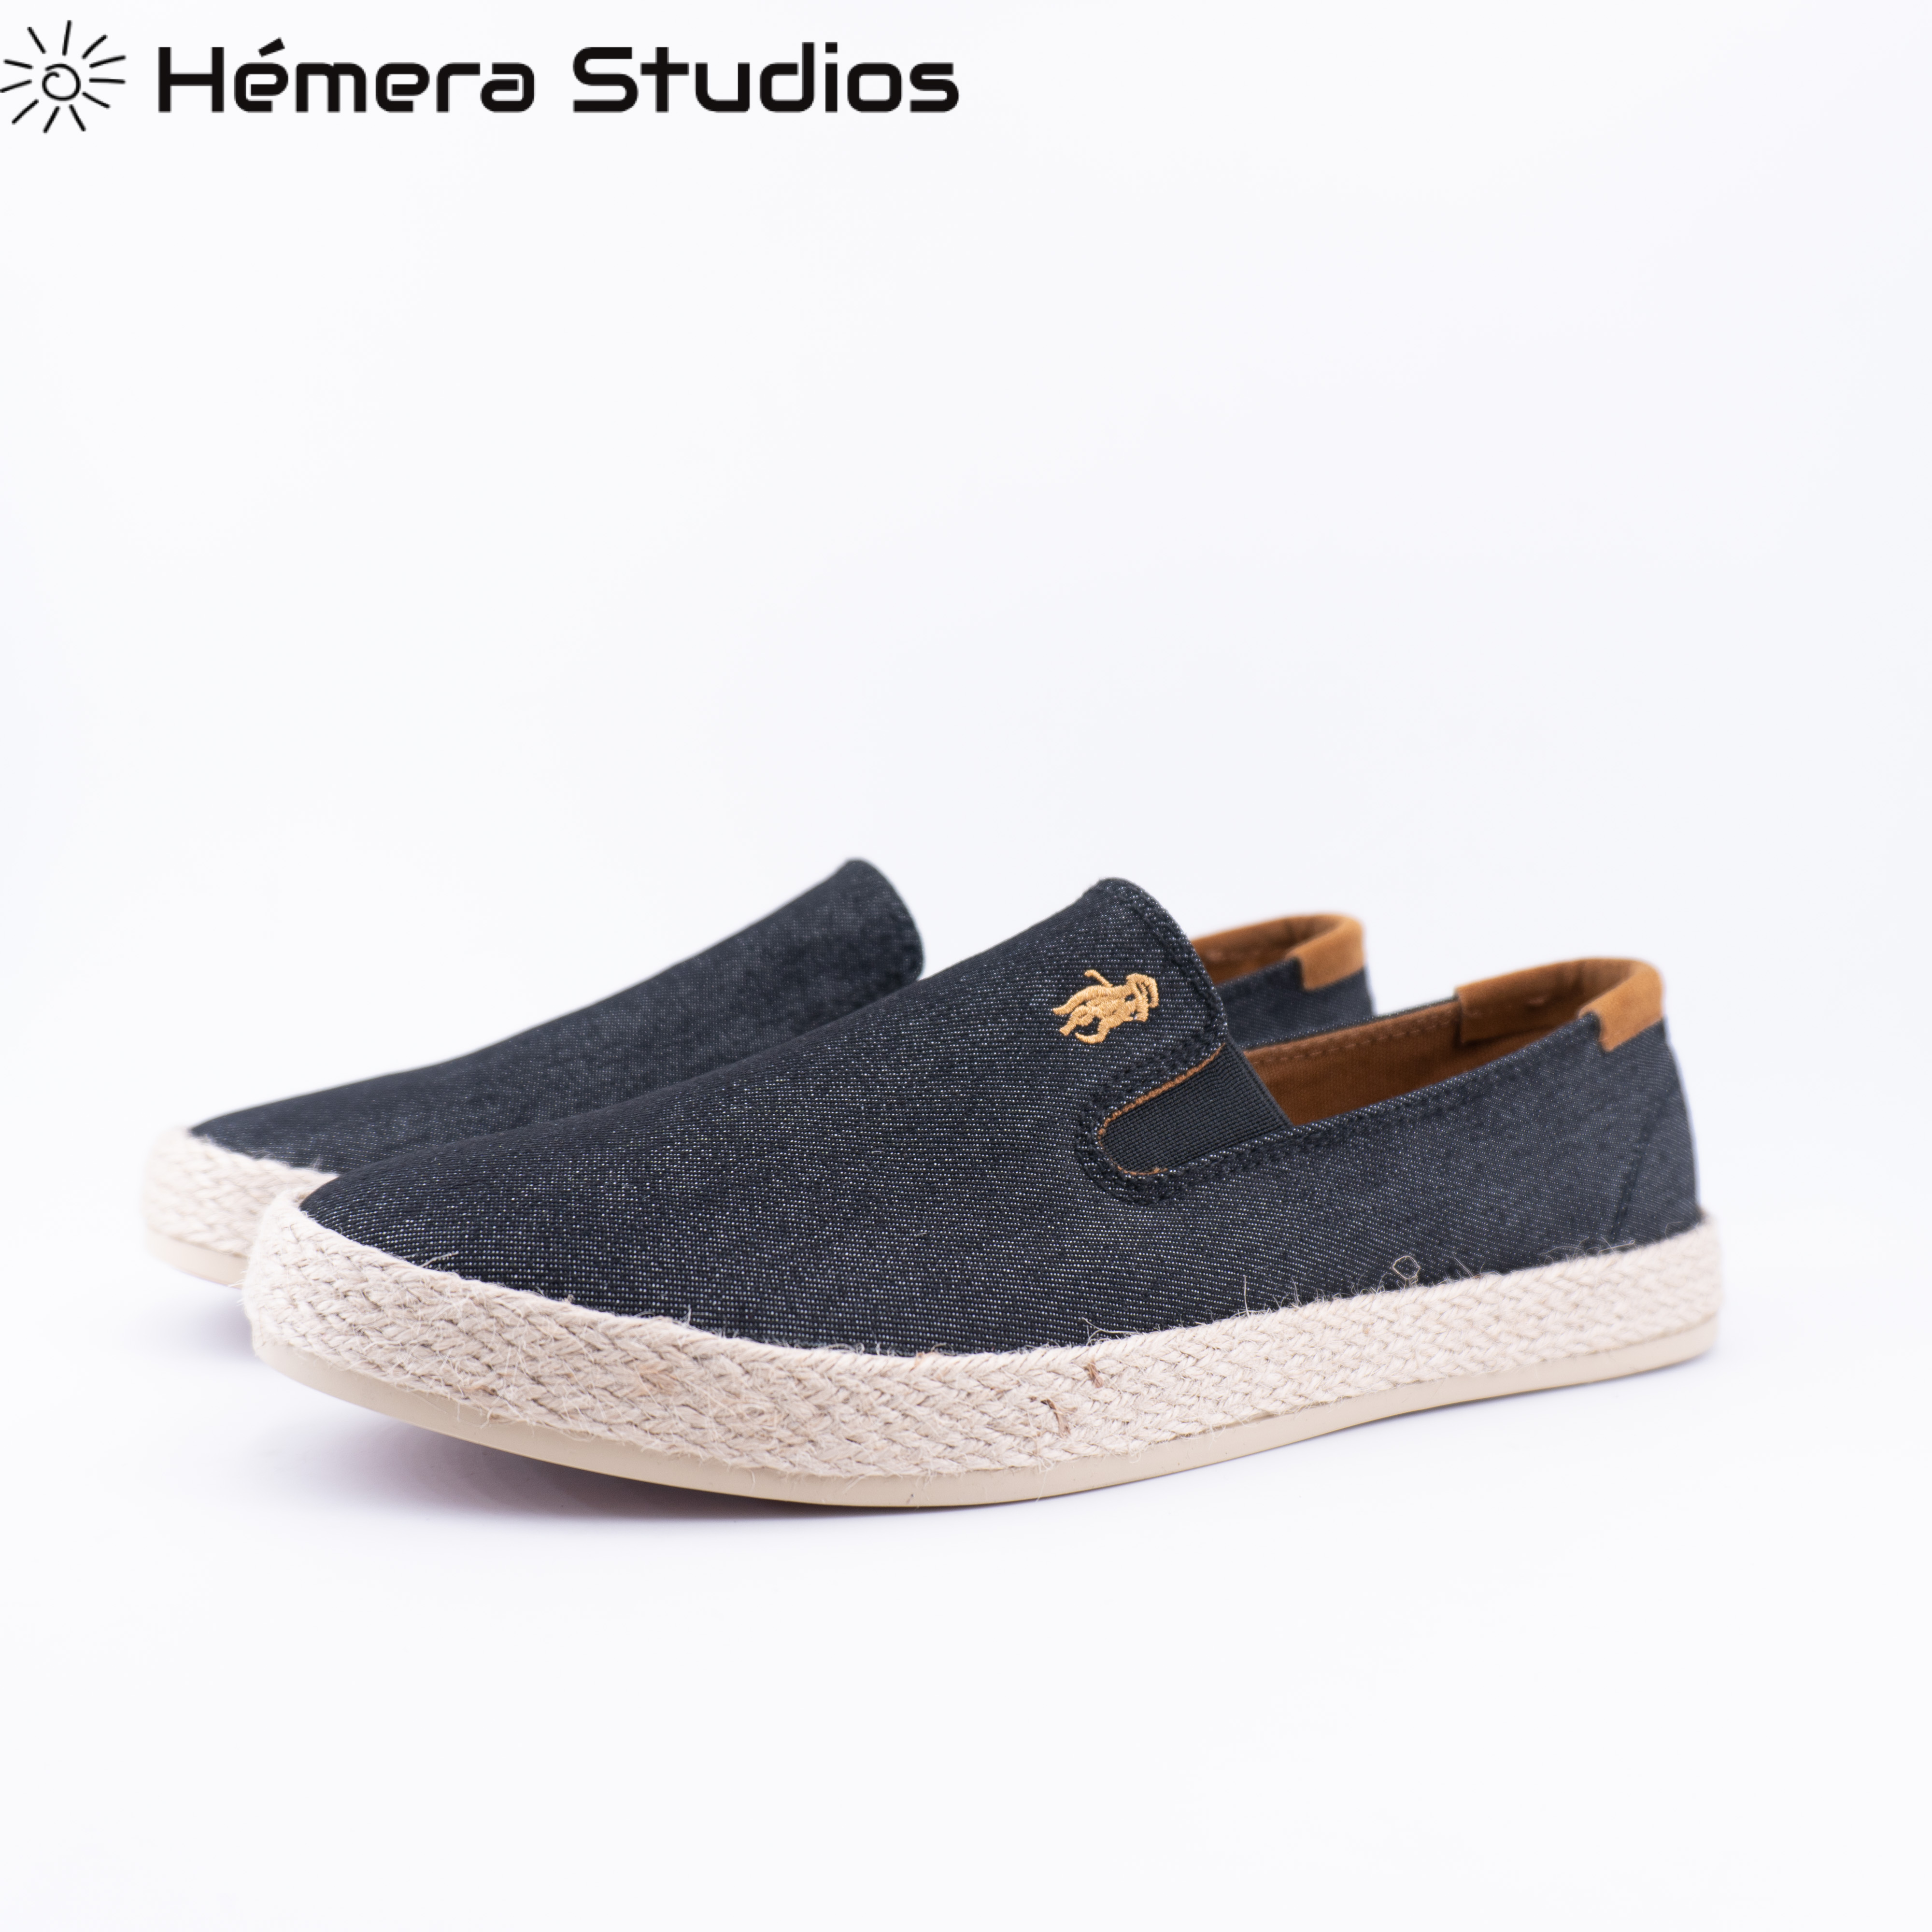 Espartos Man Canvas 2020 Summer Footwear Sneakers Casual Loafers Comfortable Platform Shoes Male New Bambas Cheap